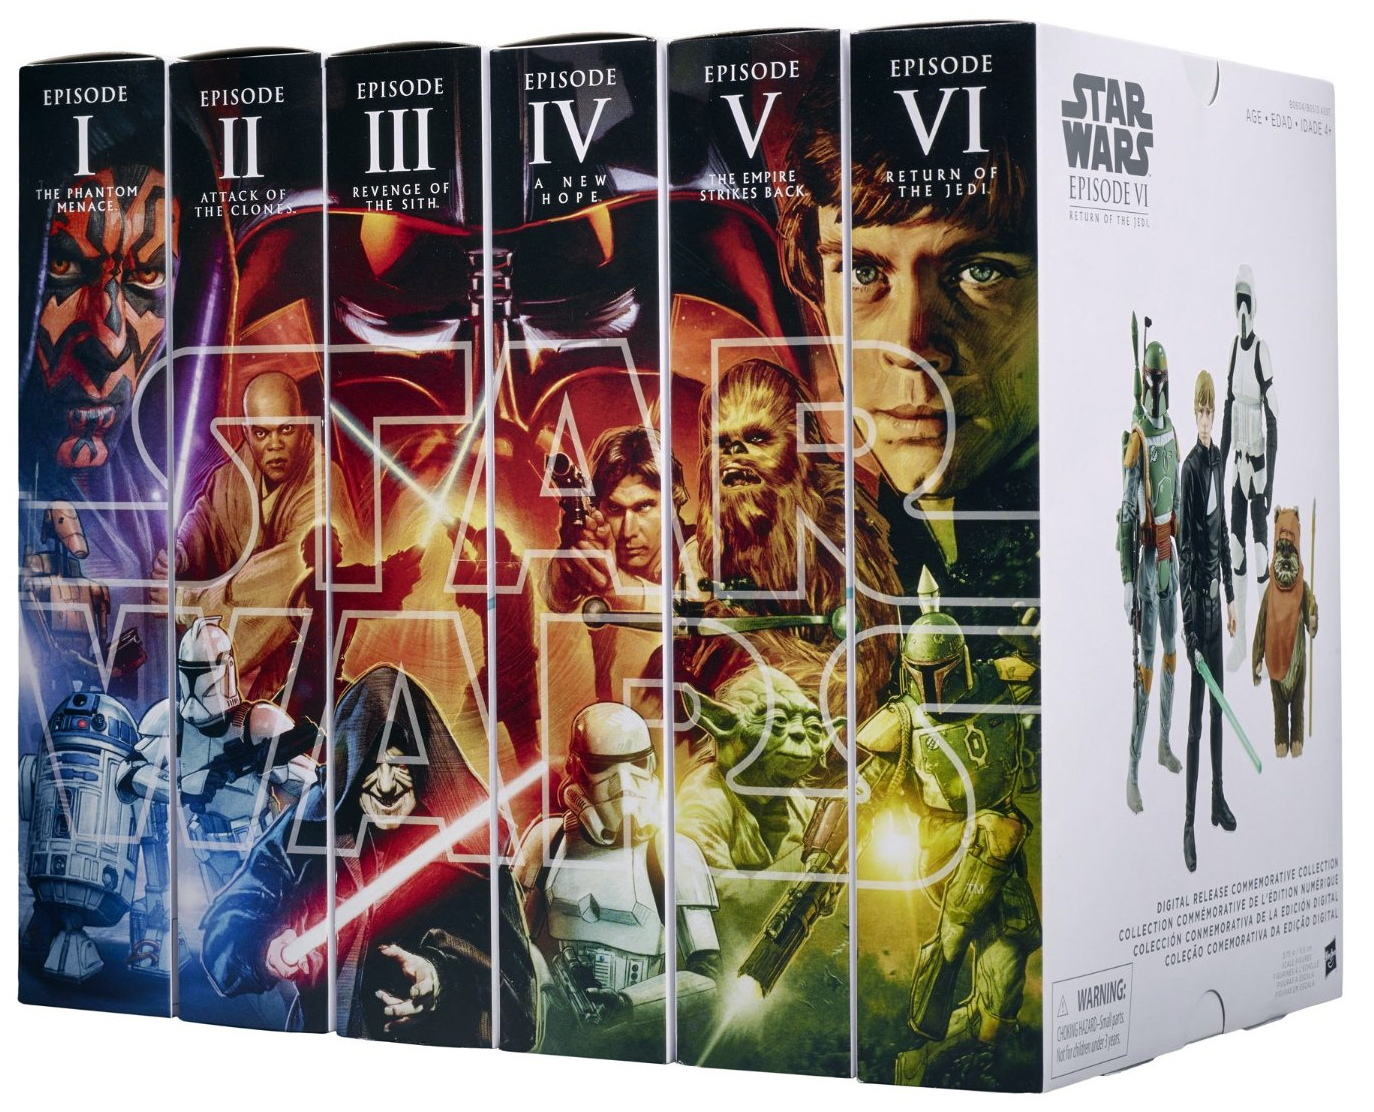 Star Wars Digital Release Commemorative Collection box set